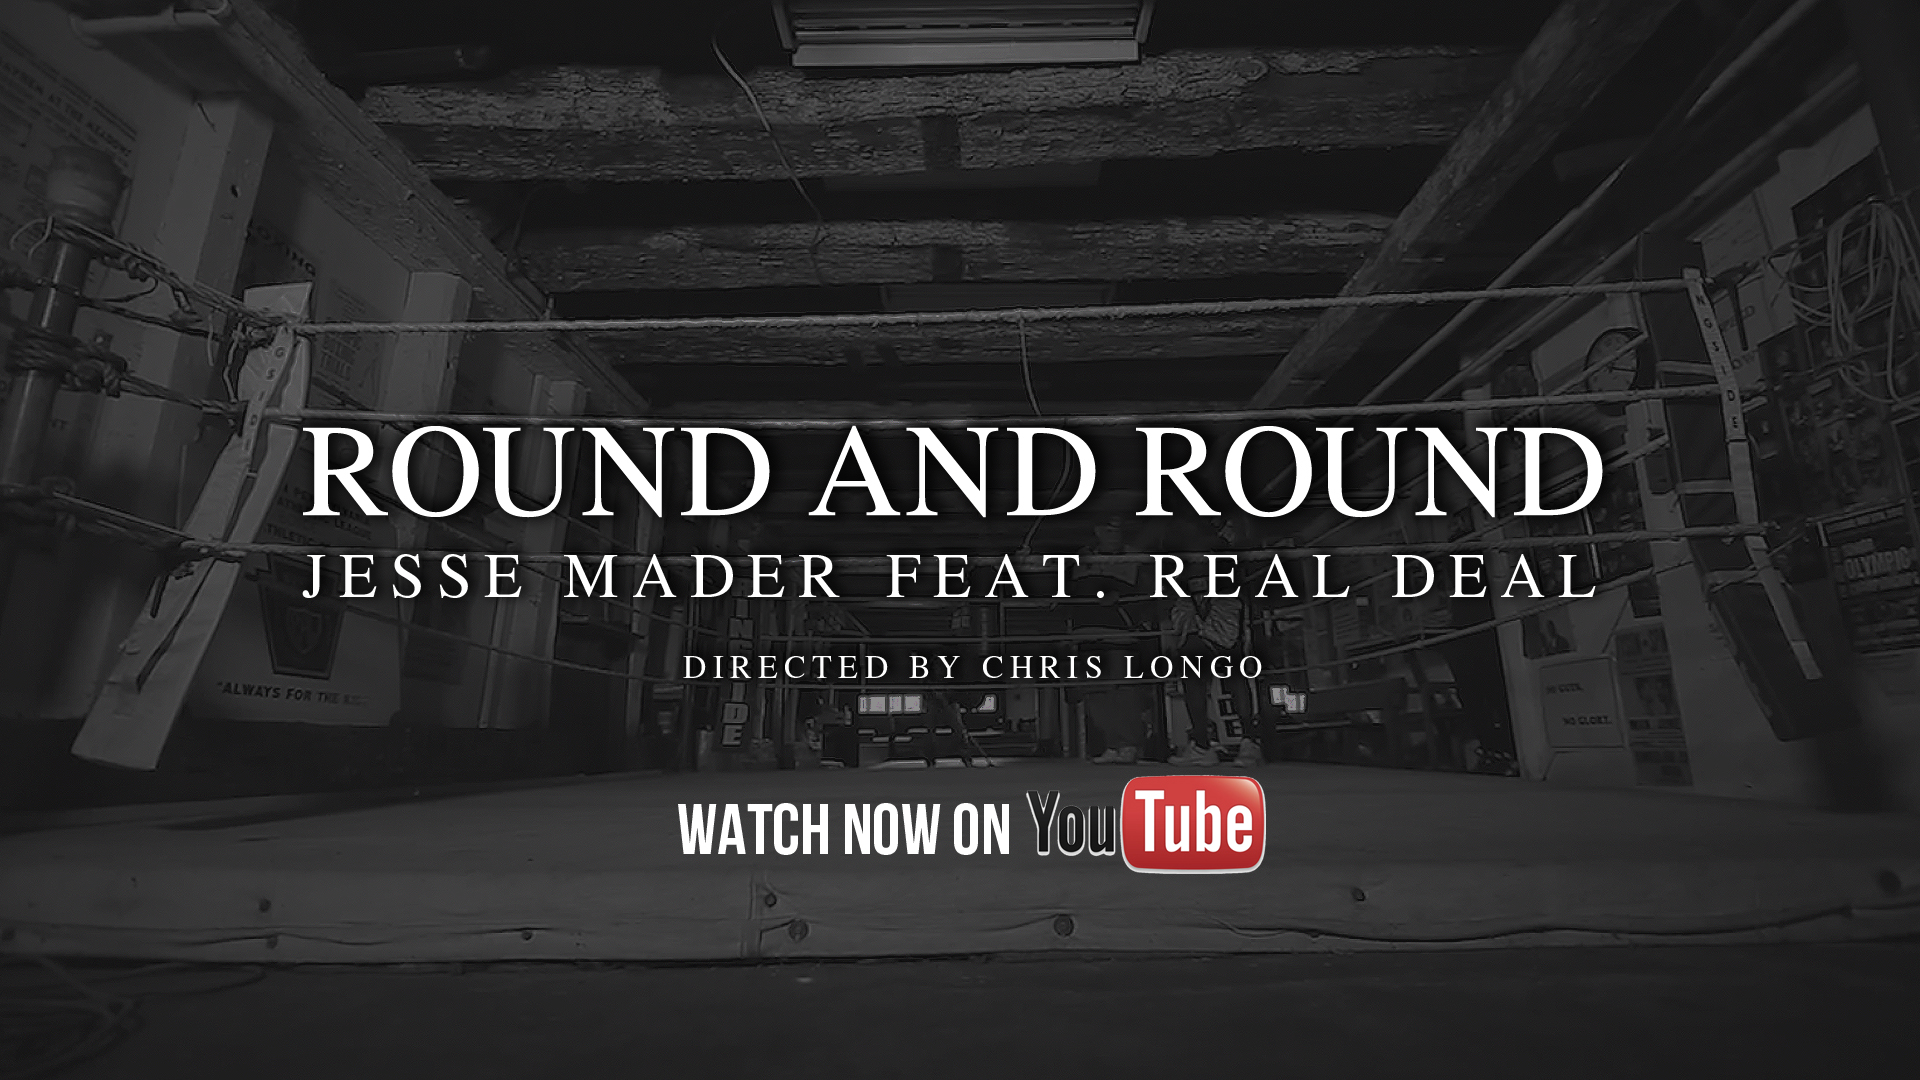 jesse-mader-breath-by-breath-urban-rock-Round-and-Round-youtube-thumb-1920x1080-flat-youtube